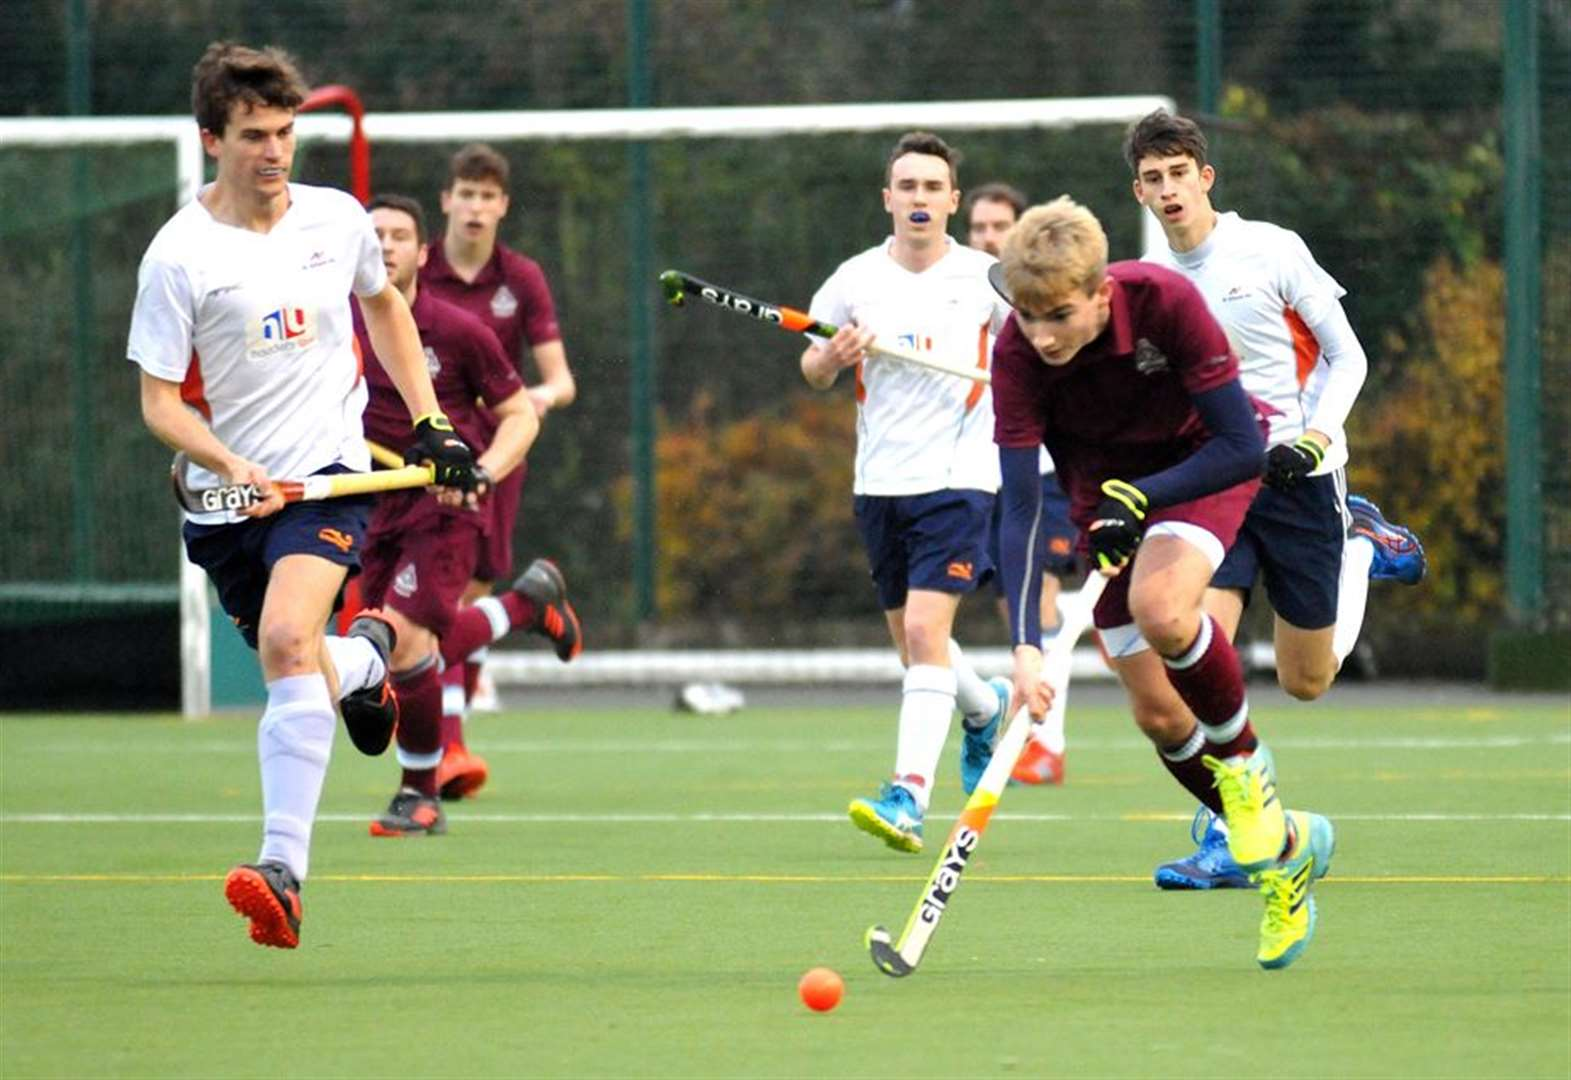 HOCKEY: Mixed weekend for Spalding men